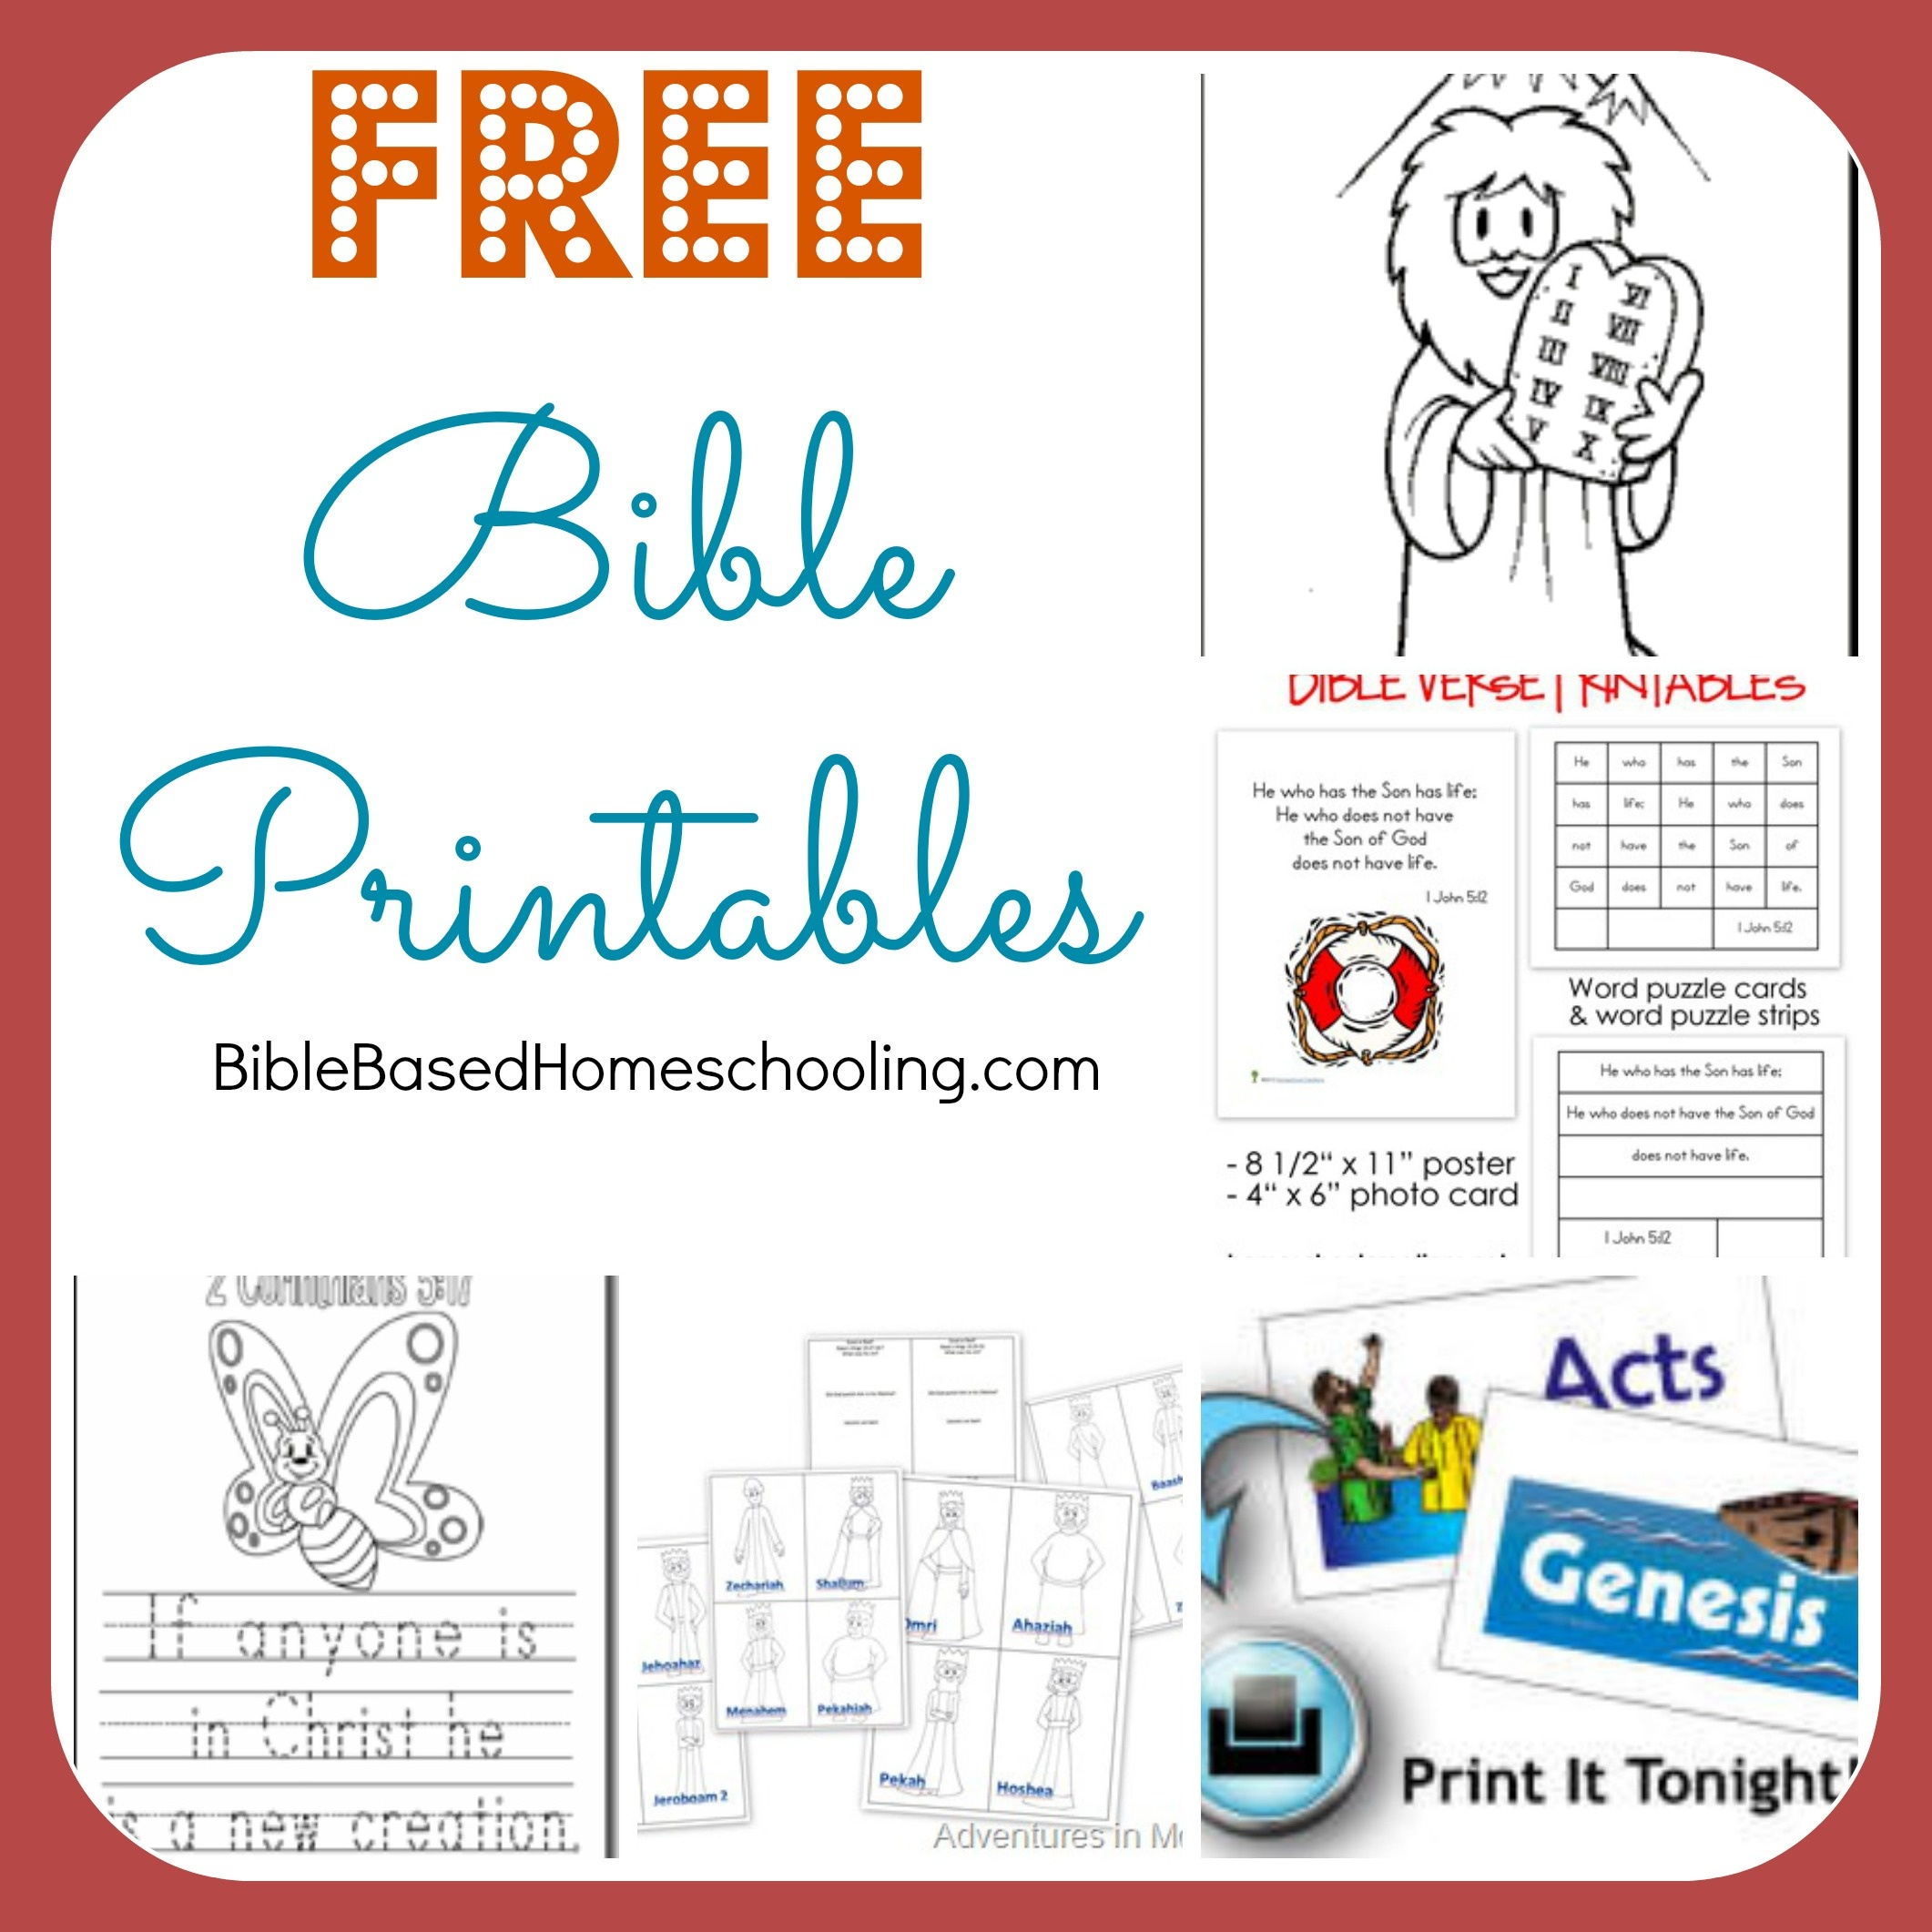 Free Printable Bible Games (87+ Images In Collection) Page 2 - Free Printable Bible Games For Youth